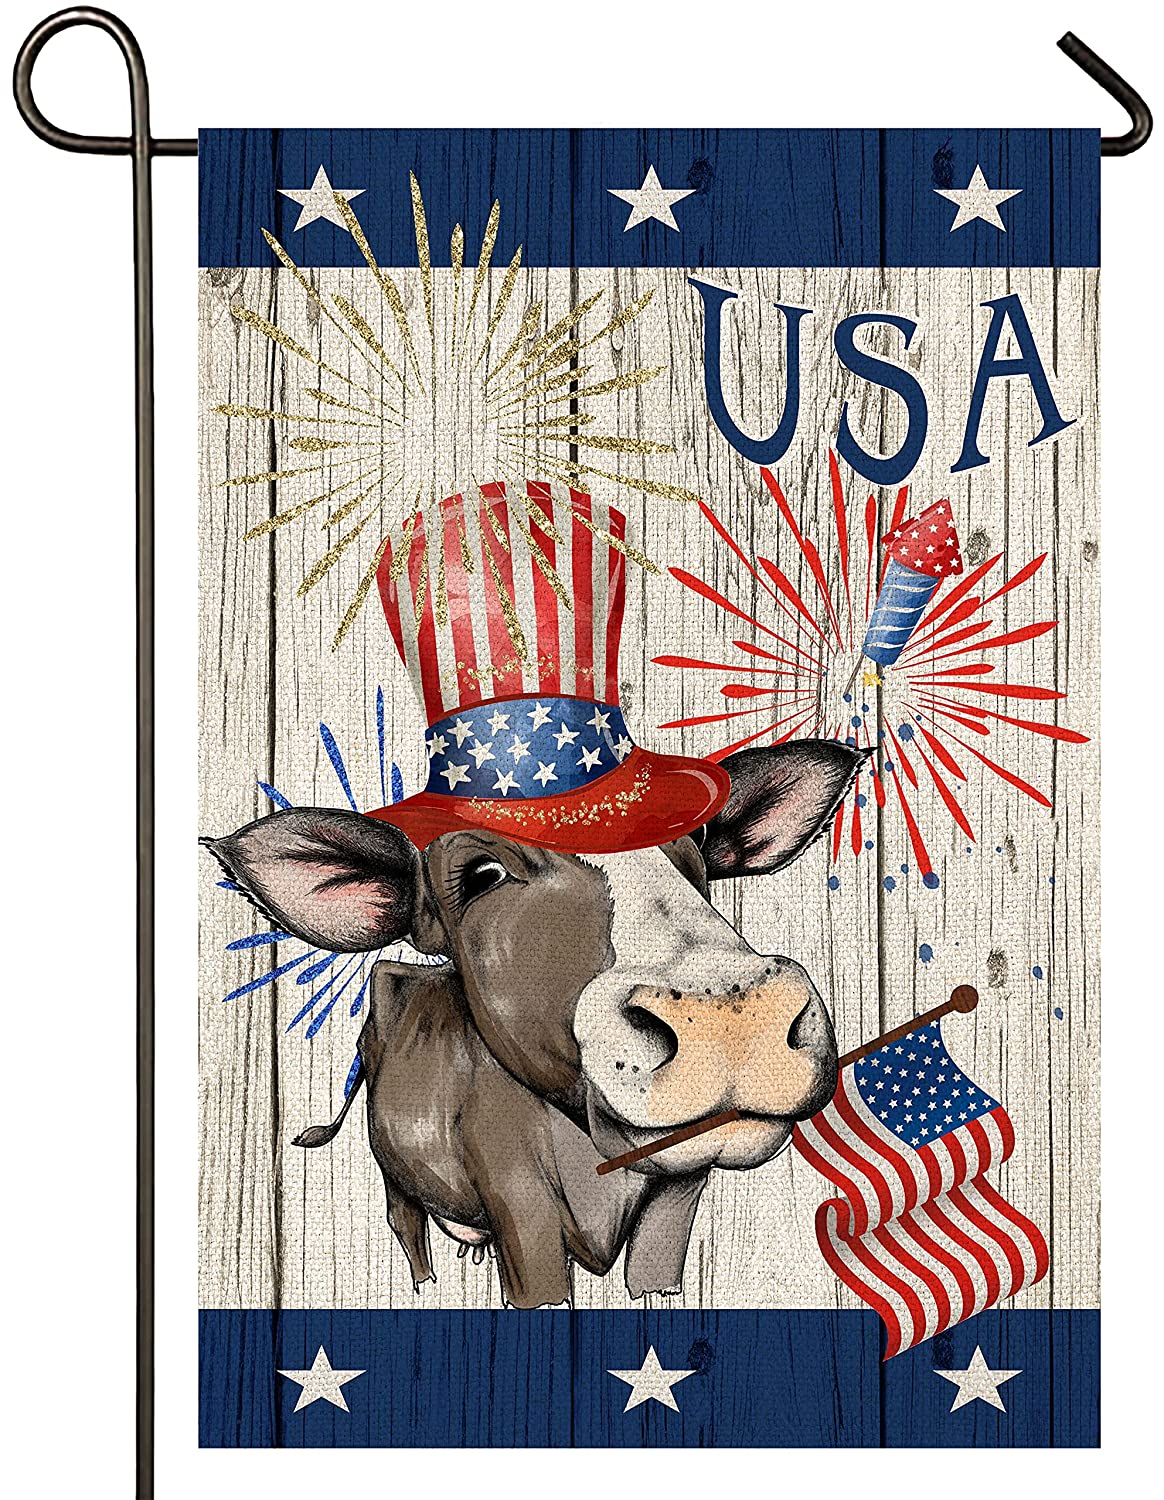 Atenia Burlap Garden Flag, Double Sided American Cow Patriotic Garden Outdoor Yard Flags for 4th of July Decorations